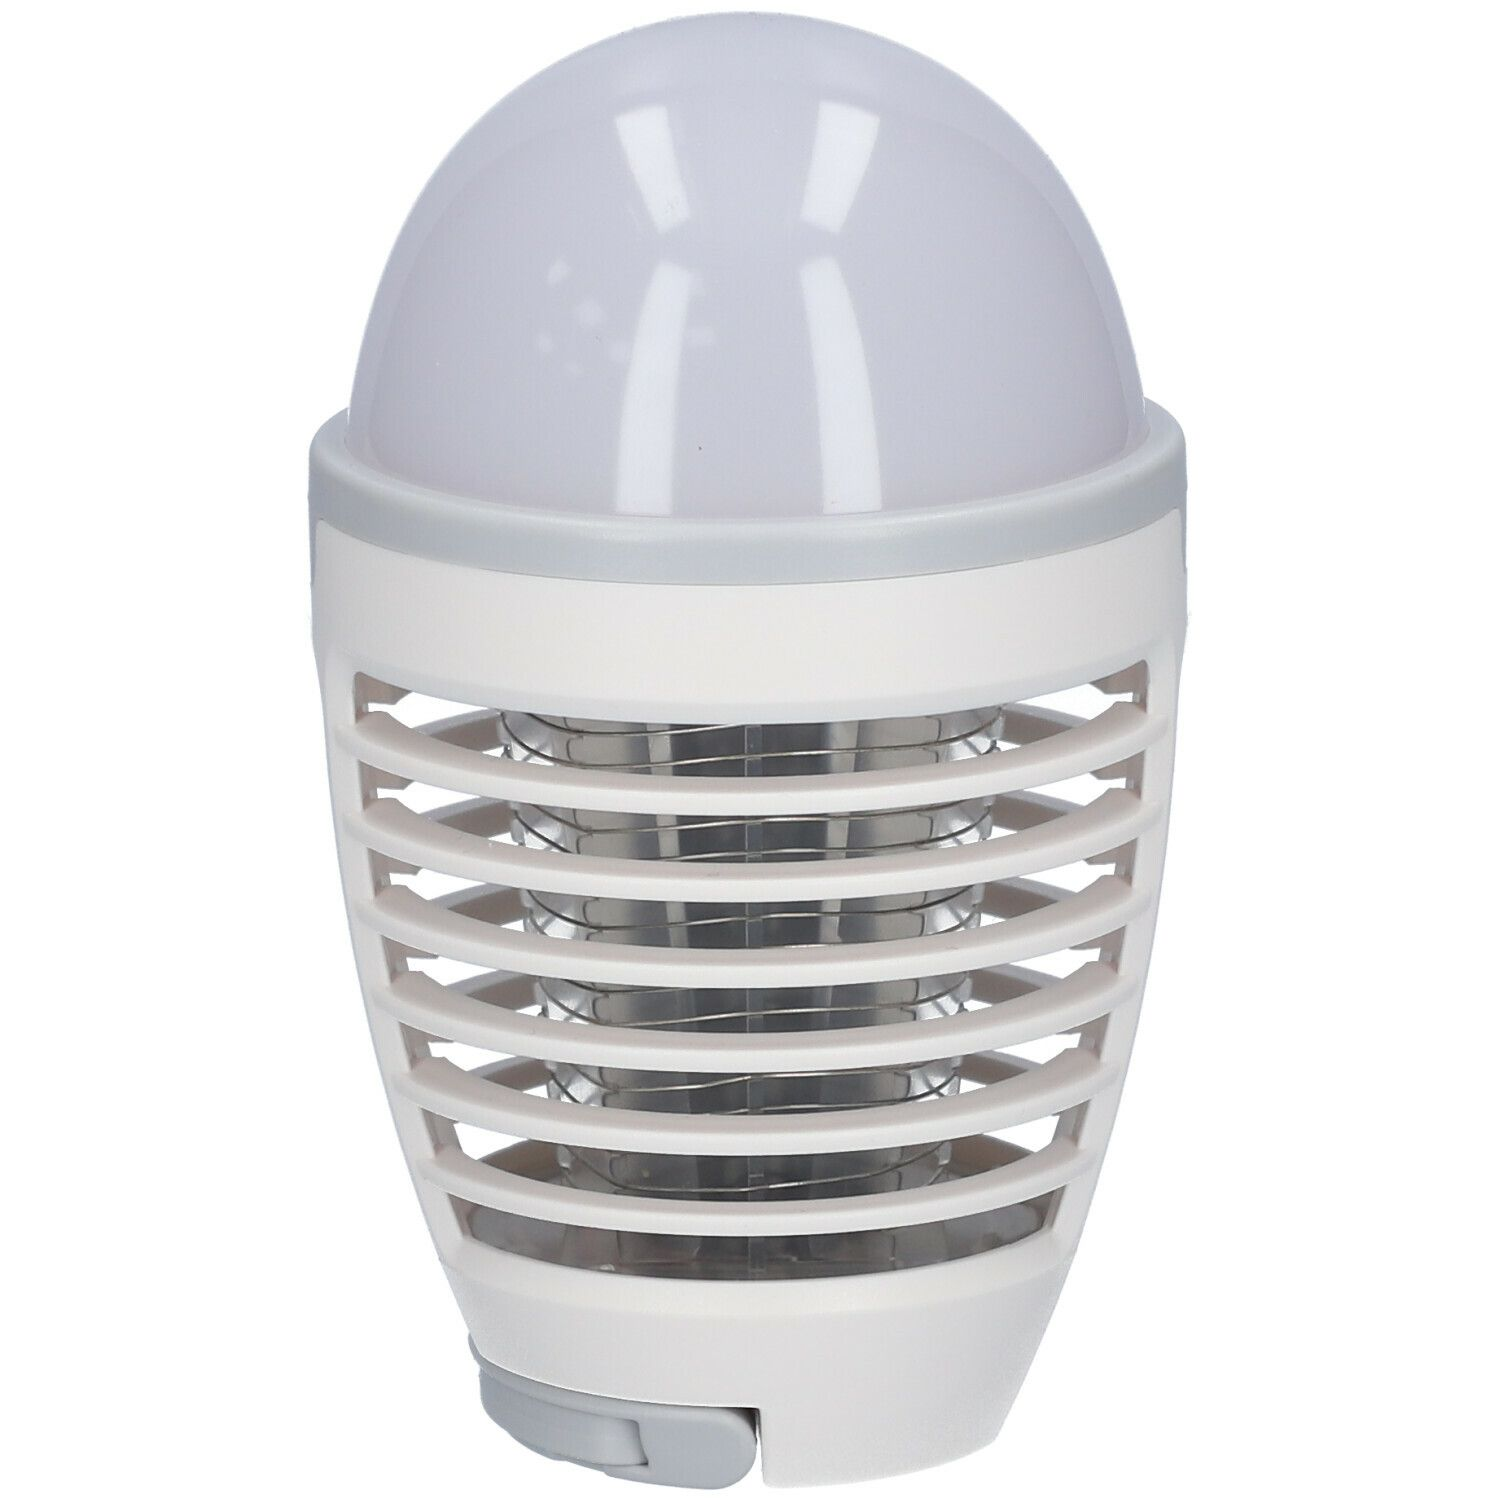 Image of ByeBugz® Anti-Insect Bulb 2 en 1